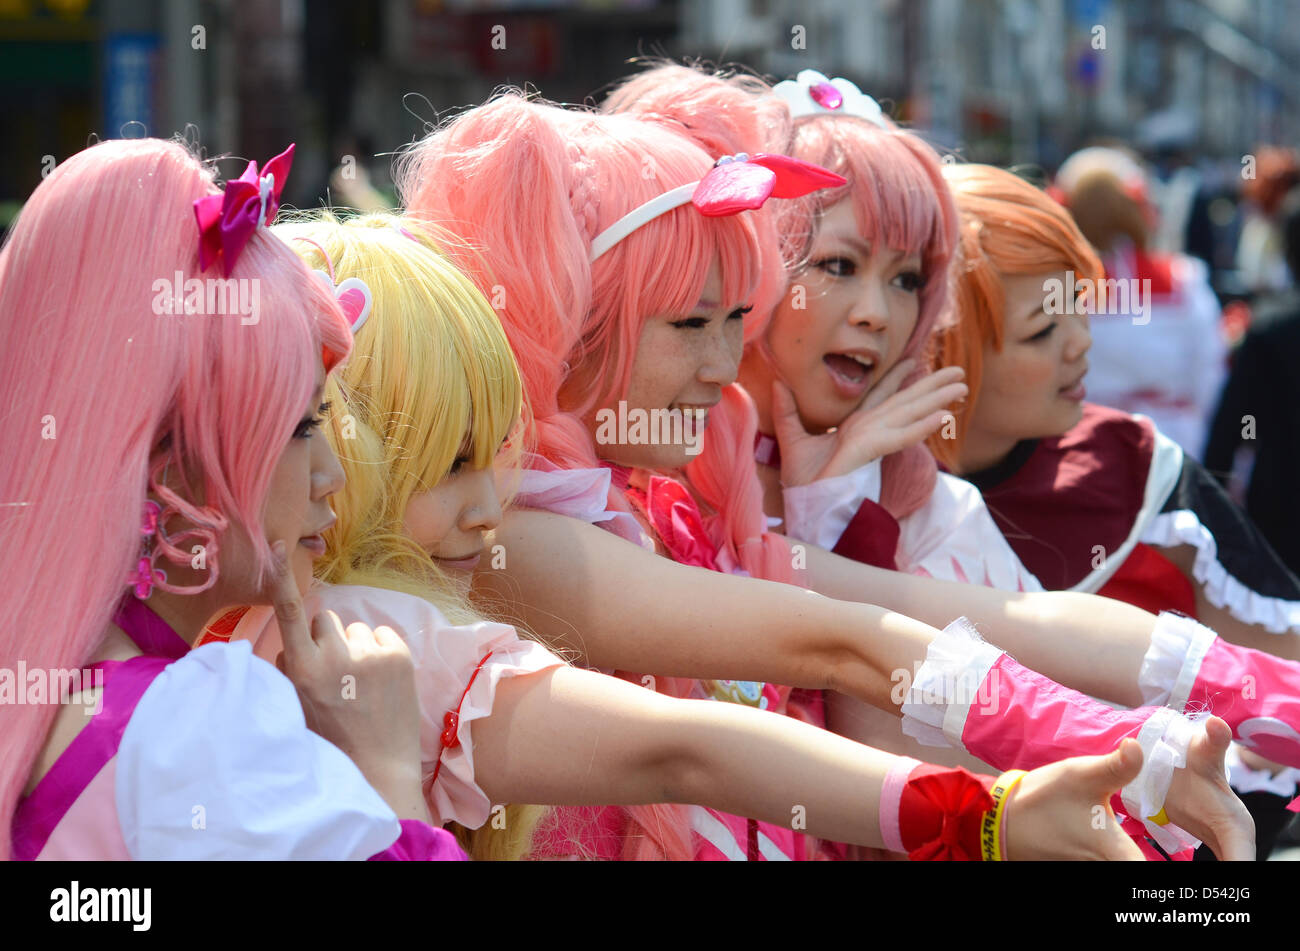 Osaka, Japan. 24th March, 2013. Thousands gather in the centre of Osaka on Sunday for the annual Nipponbashi Street - Stock Image